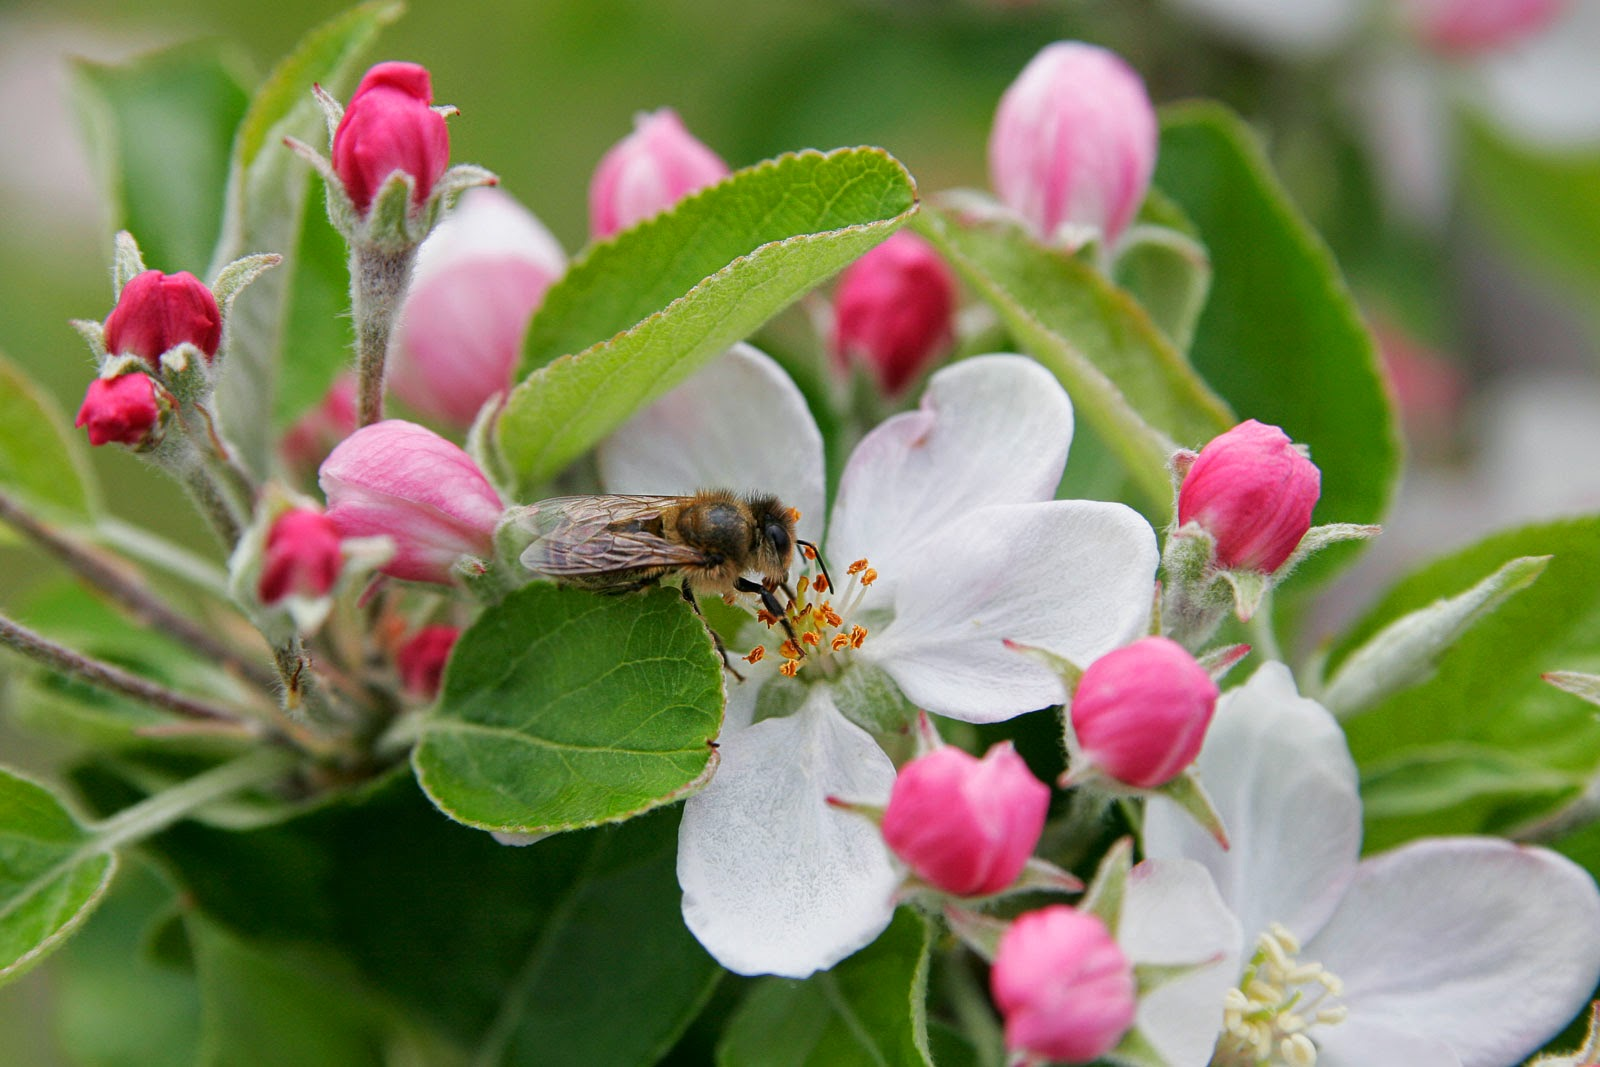 http://commons.wikimedia.org/wiki/File:Bee_in_apple_blossom.jpg